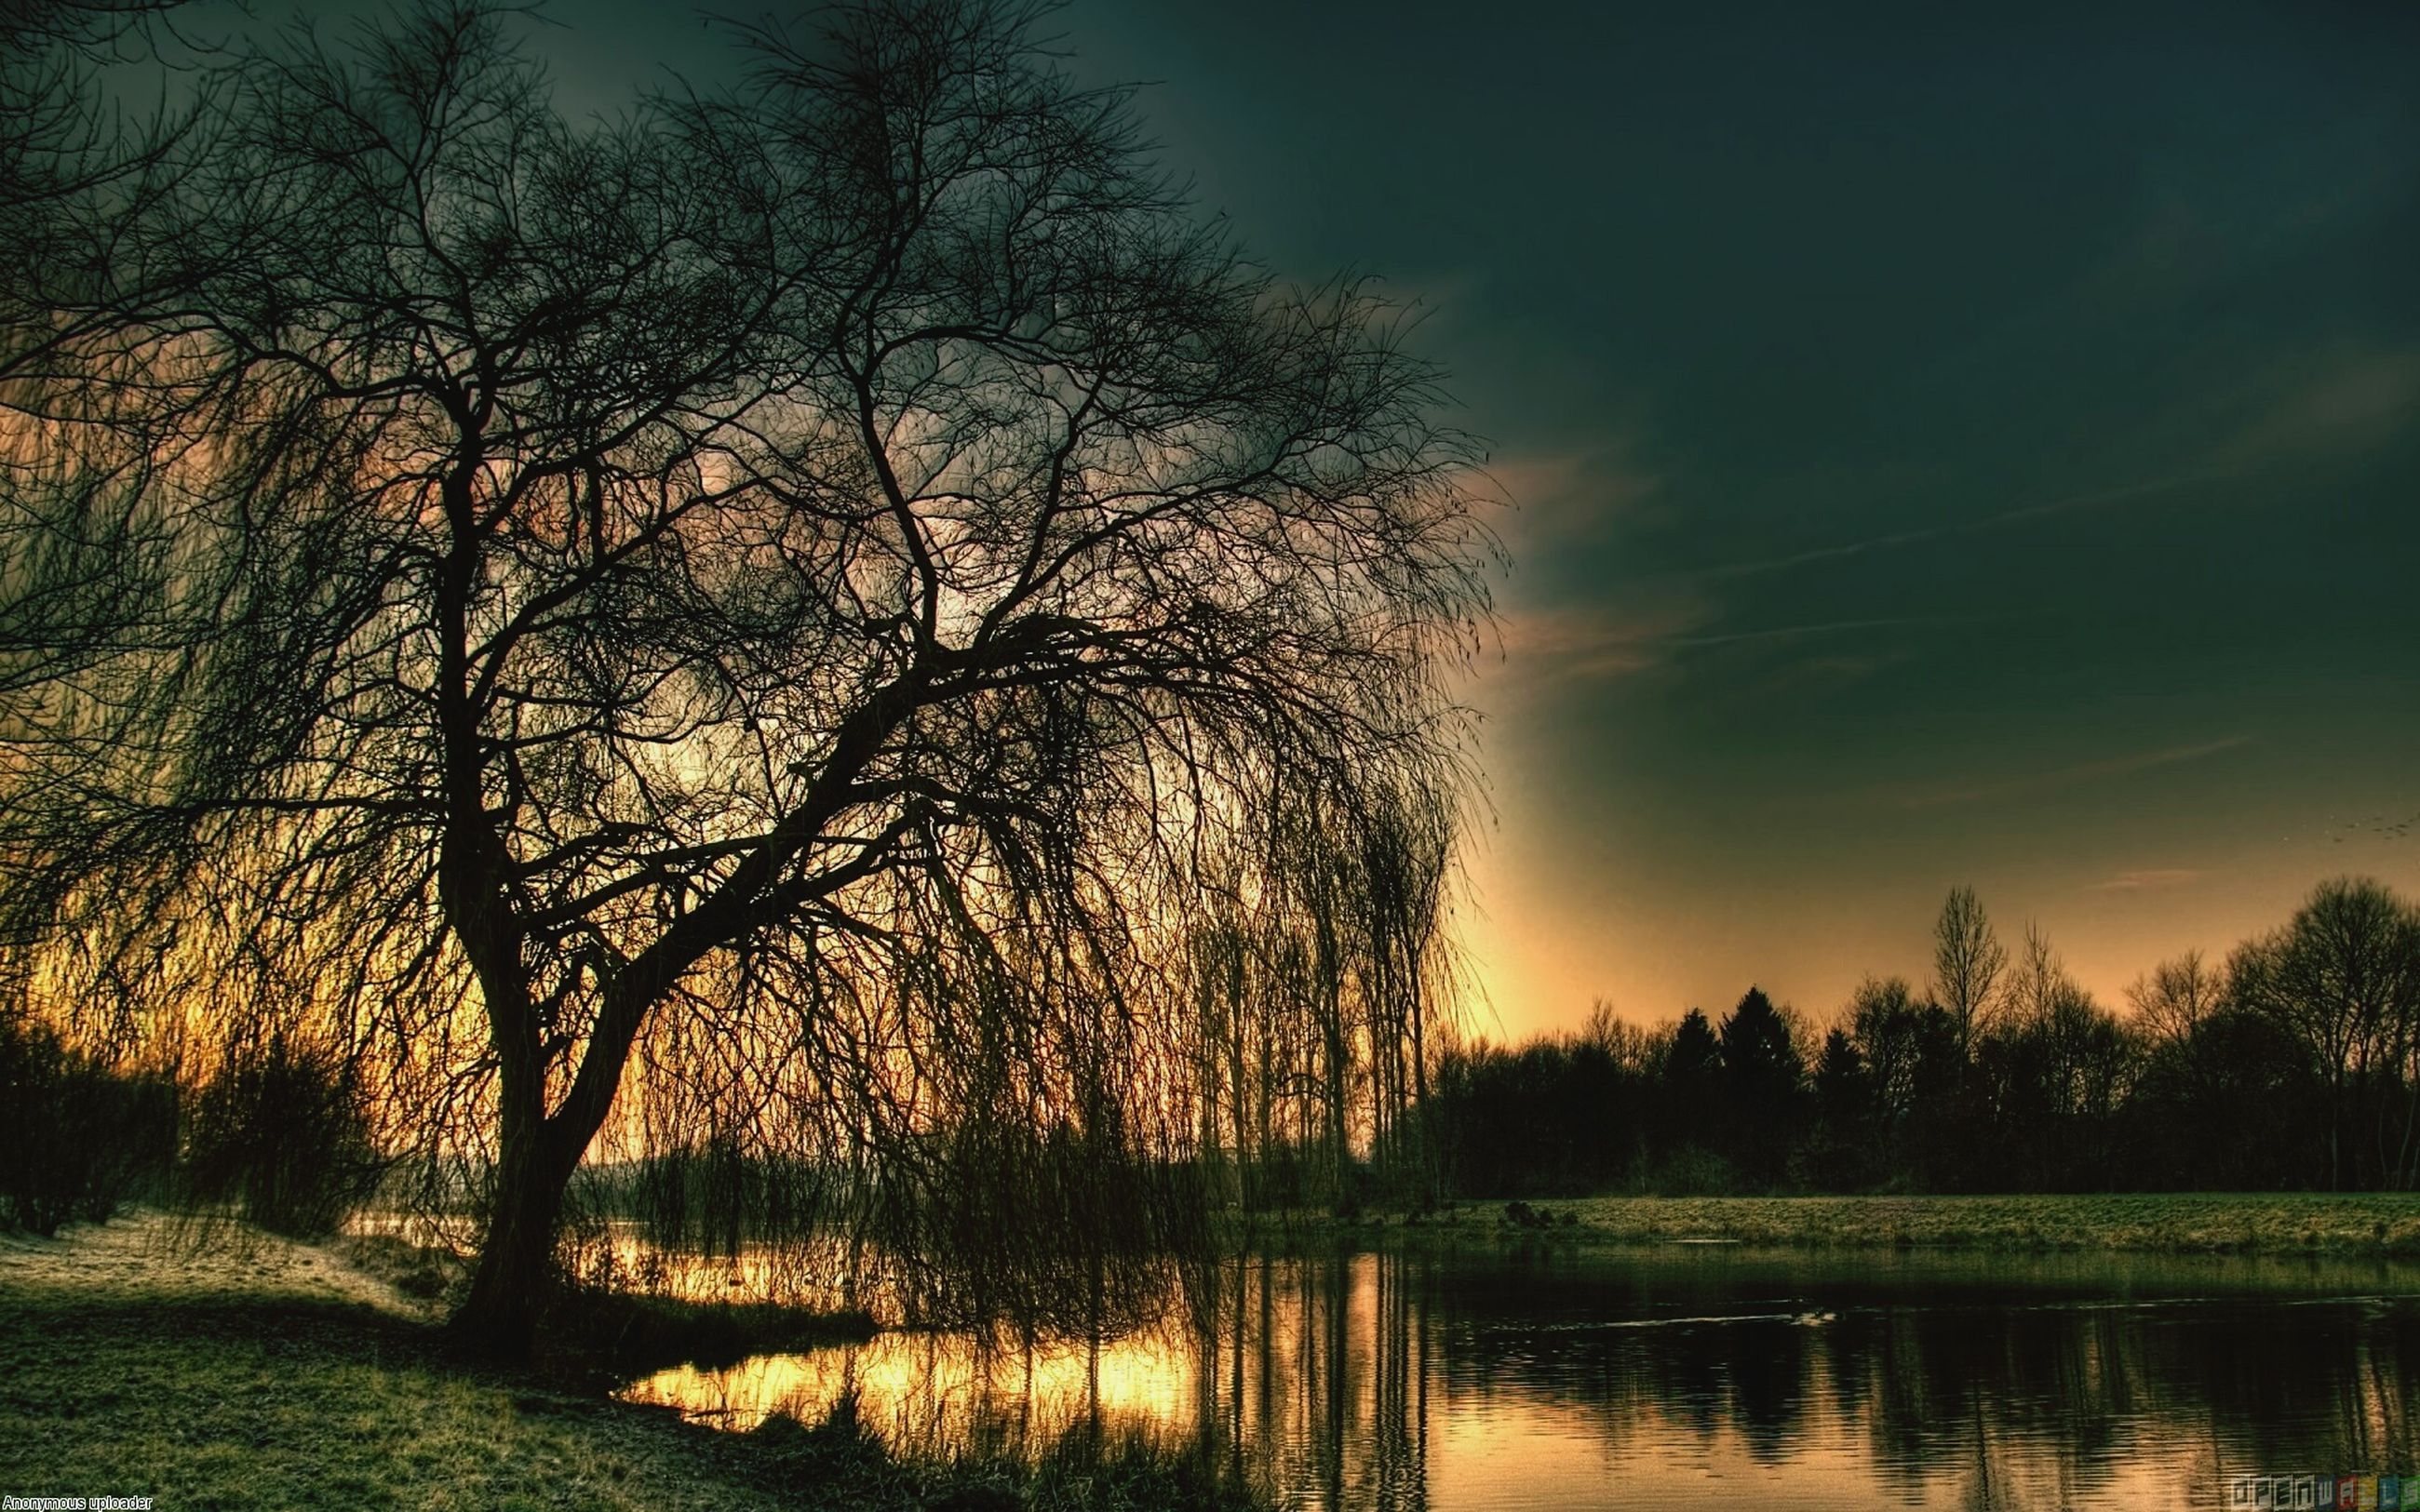 tree, water, tranquil scene, tranquility, sunset, silhouette, scenics, lake, beauty in nature, reflection, sky, nature, bare tree, idyllic, river, branch, waterfront, growth, non-urban scene, outdoors